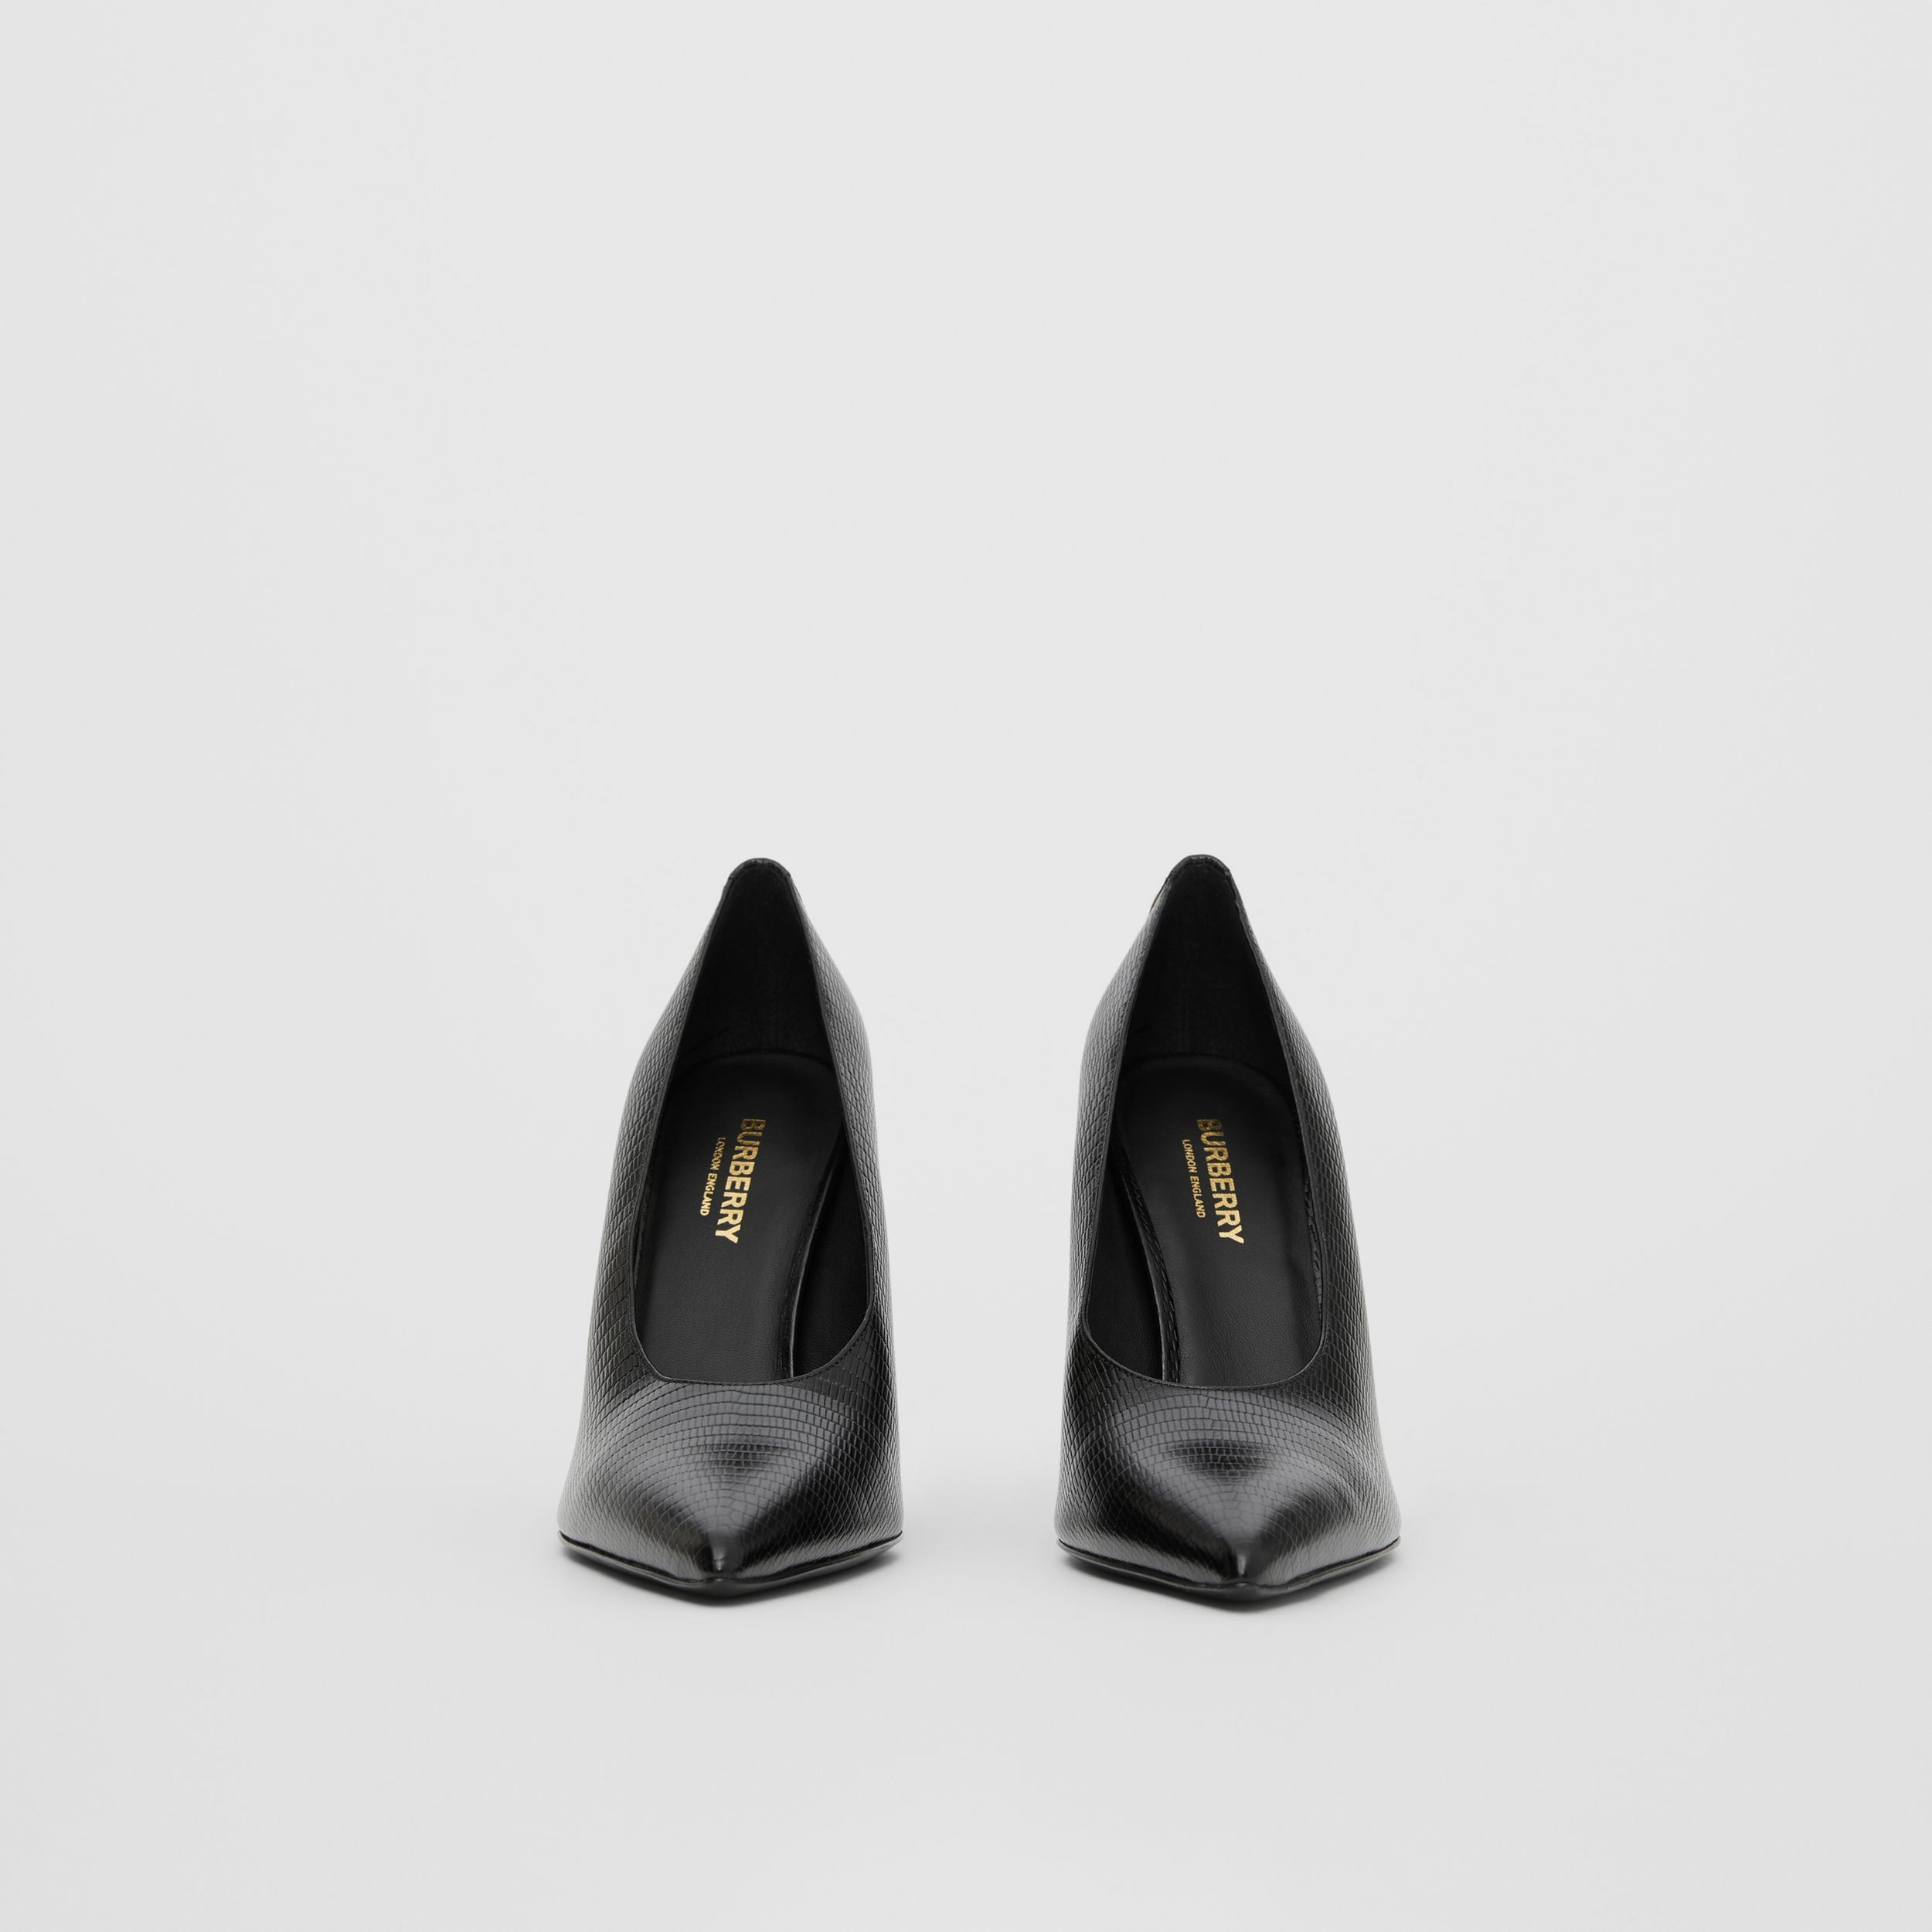 Stud Detail Embossed Leather Point-toe Pumps in Black - Women | Burberry United States - 4